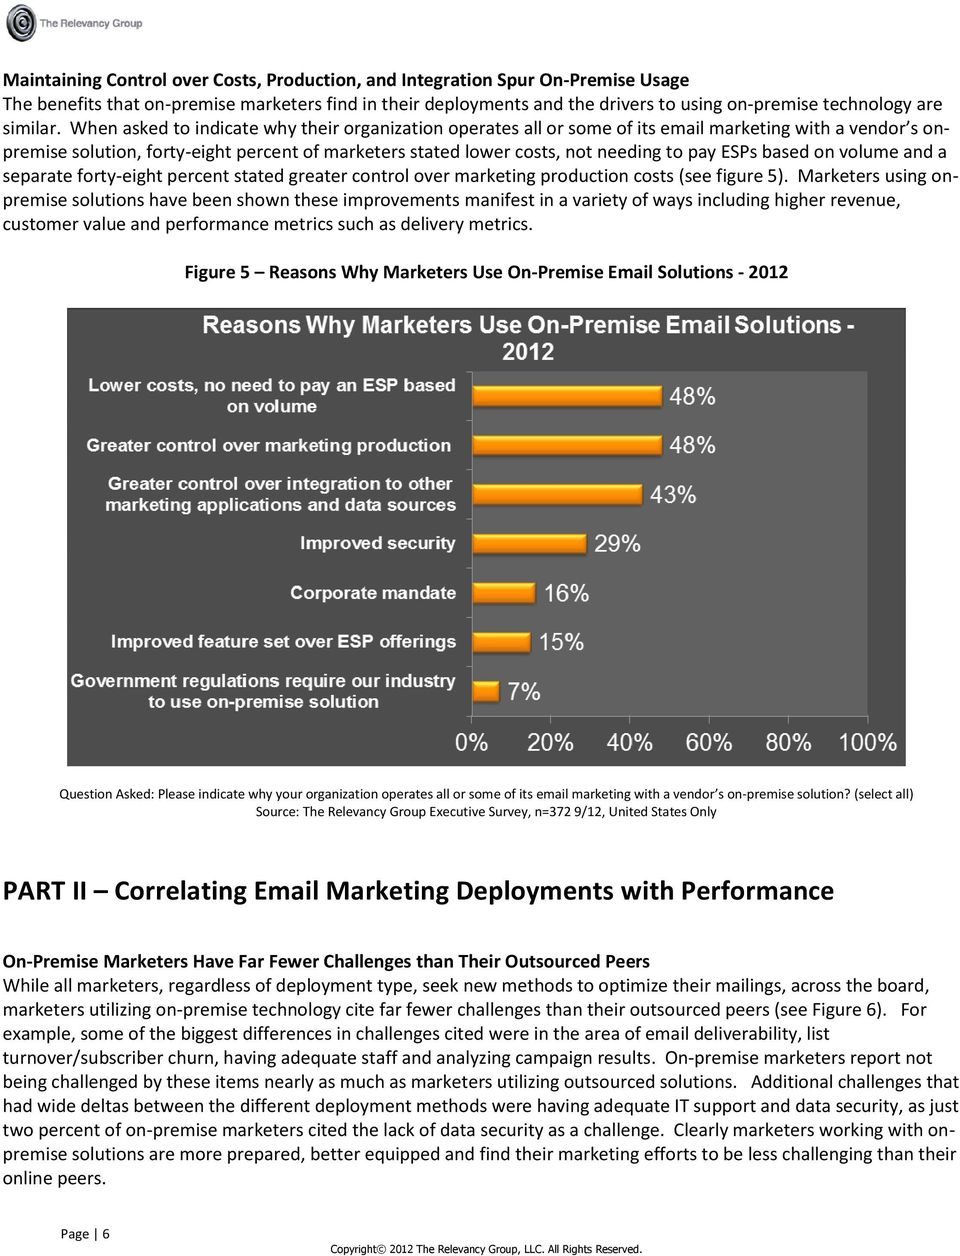 When asked to indicate why their organization operates all or some of its email marketing with a vendor s onpremise solution, forty-eight percent of marketers stated lower costs, not needing to pay